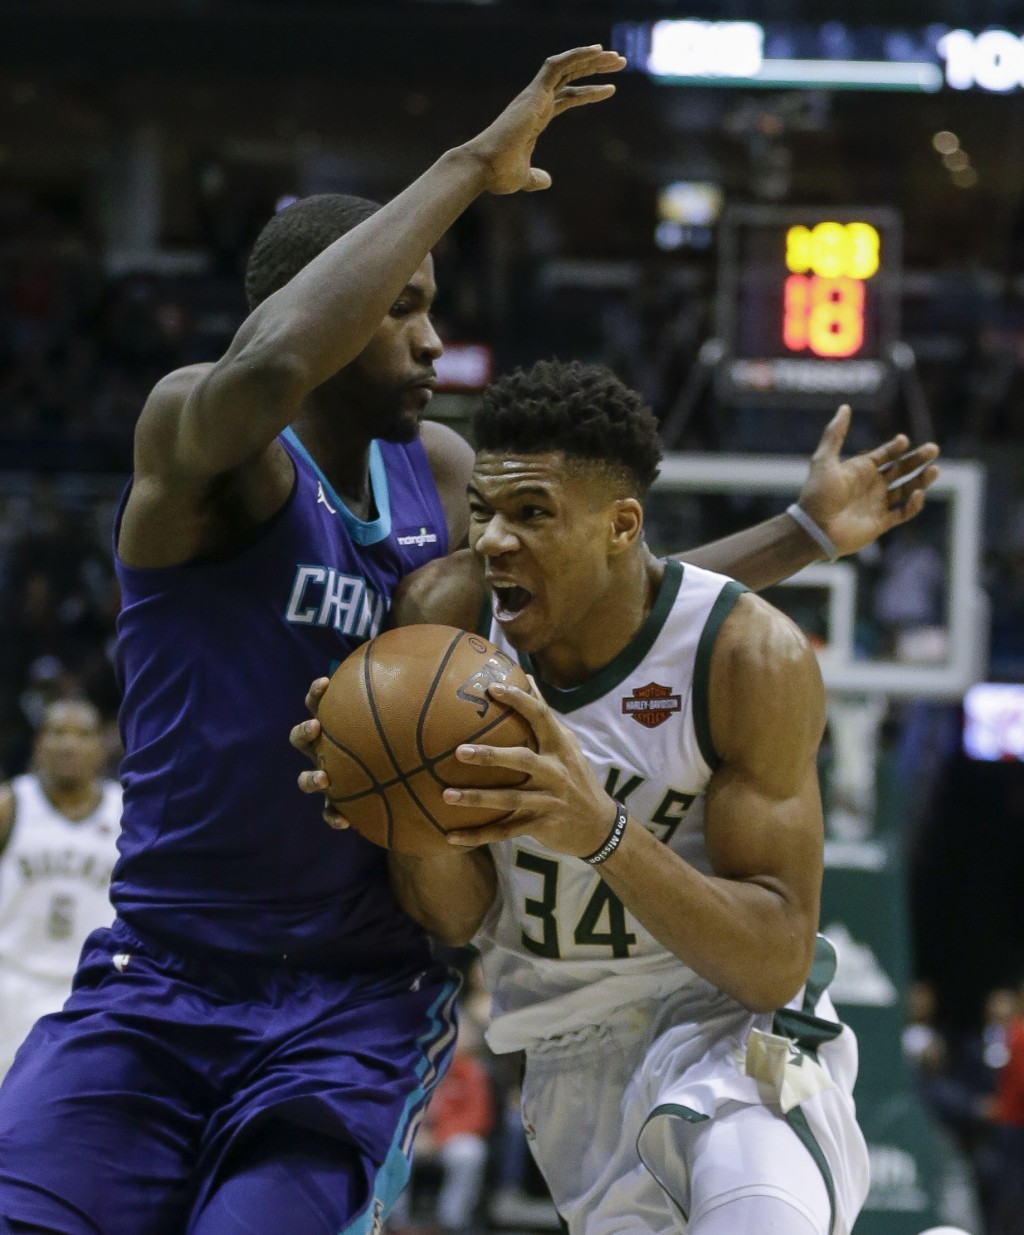 Milwaukee Bucks' Giannis Antetokounmpo, right, drives the ball against Charlotte Hornets' Michael Kidd-Gilchrist during the first half of an NBA baske...